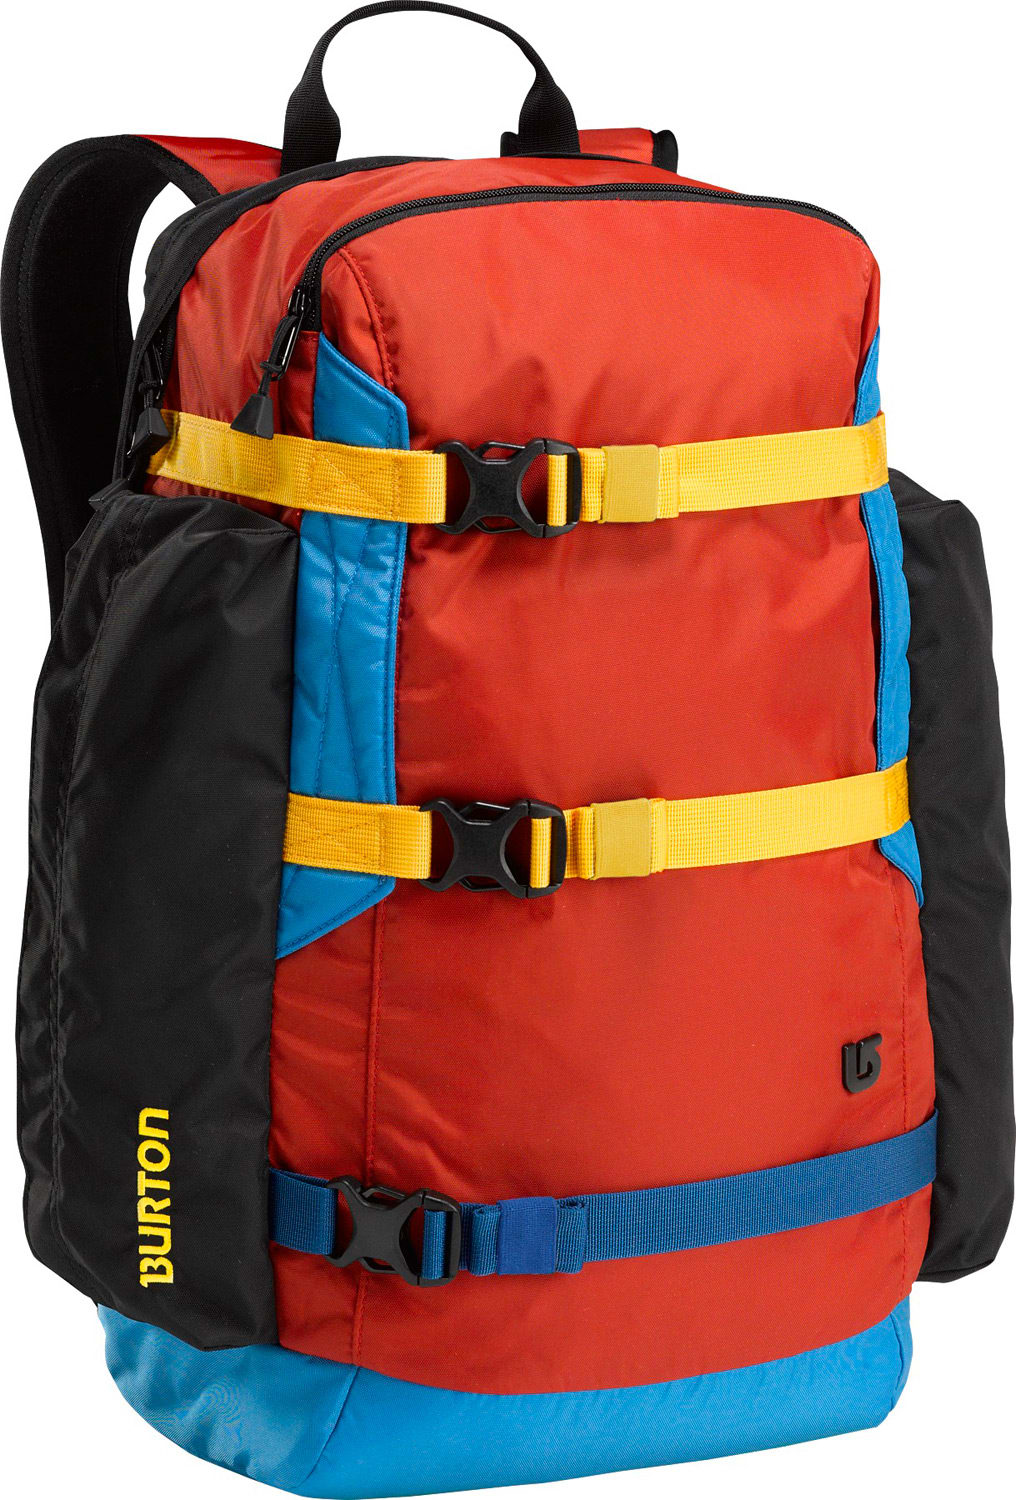 Burton Day Hiker Backpack Burner Colorblock 25L